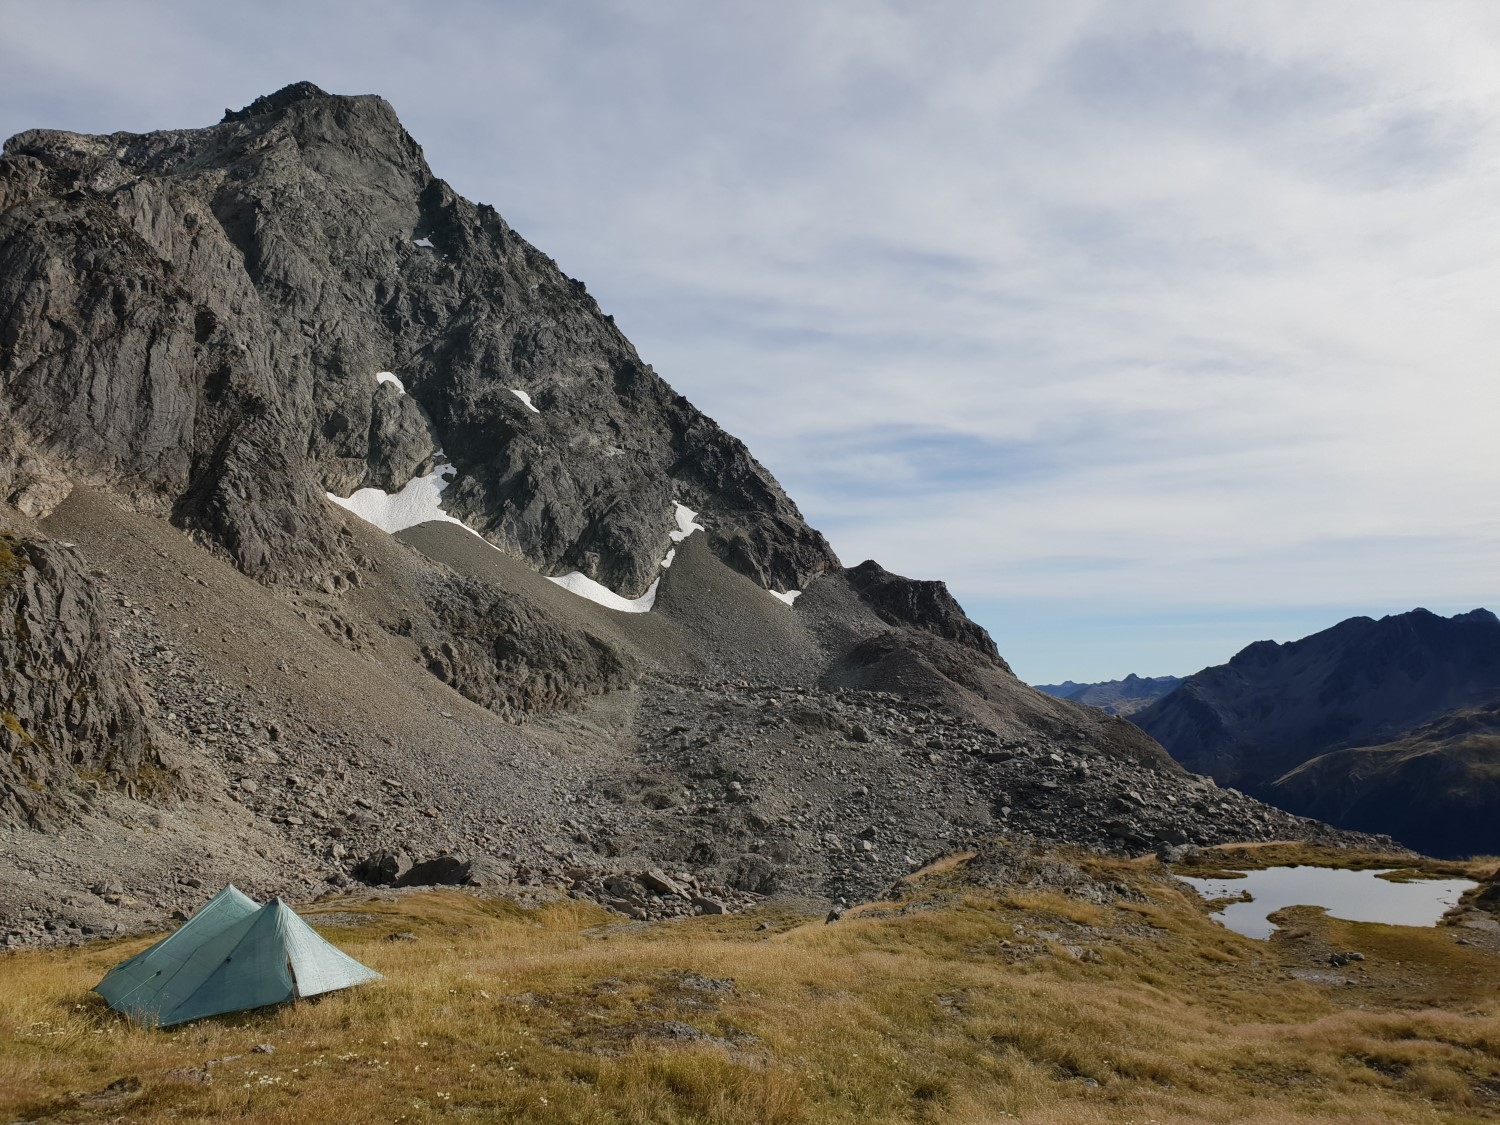 A beautiful spot for WILD camping is JUST below the south face of Mt Travers.